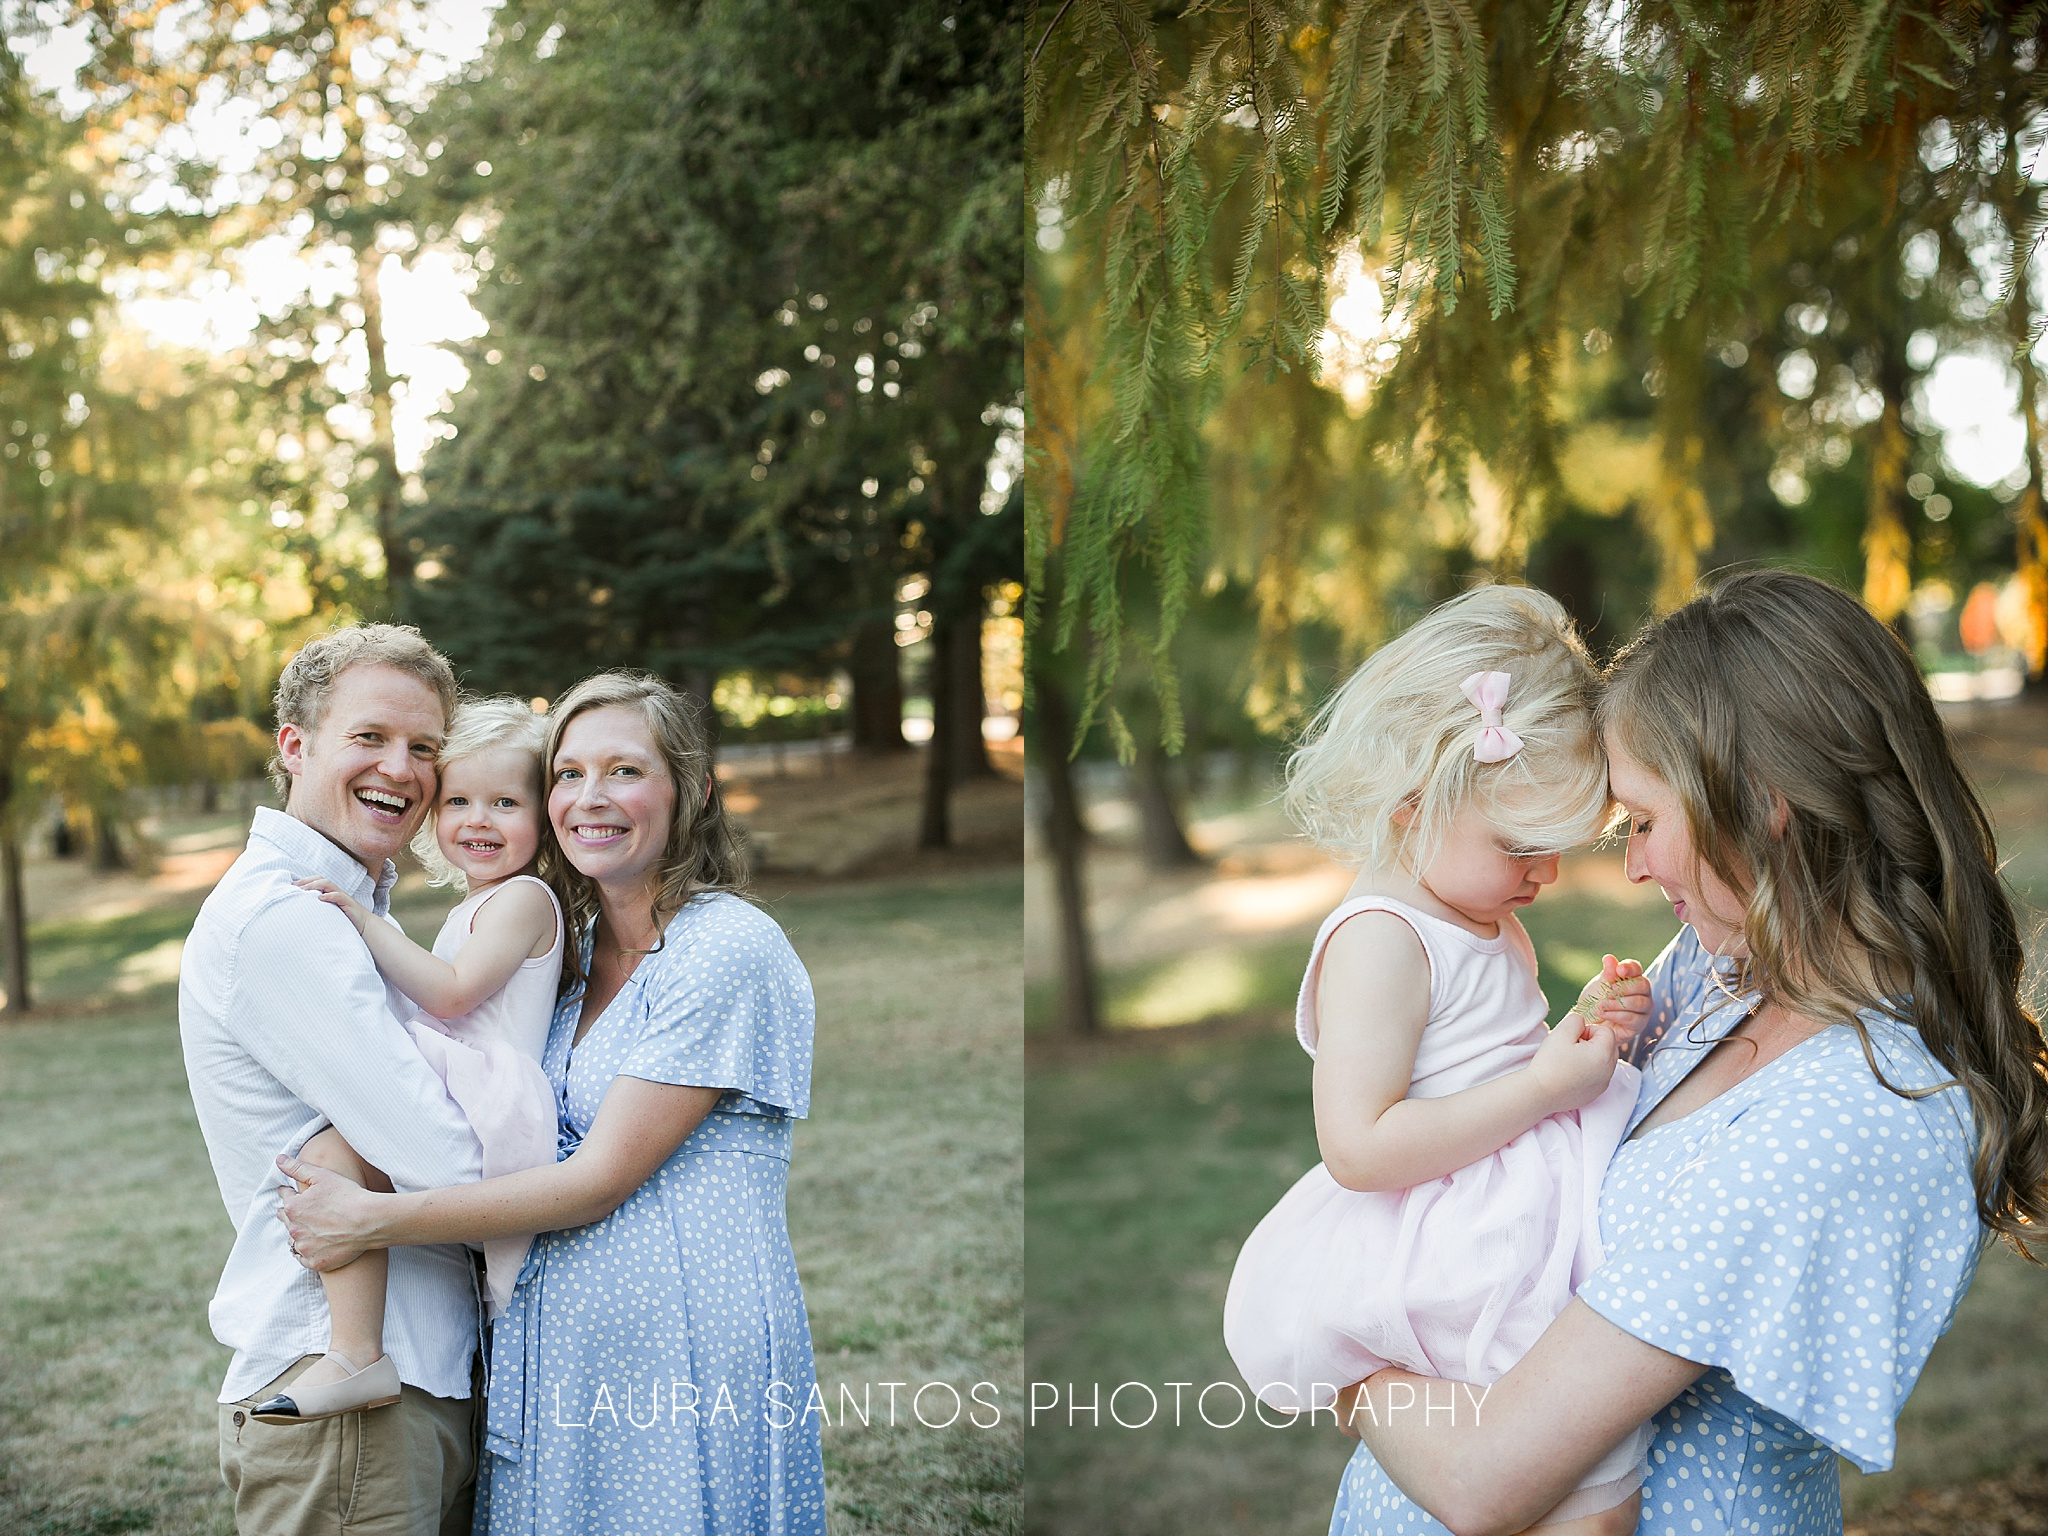 Laura Santos Photography Portland Oregon Family Photographer_0723.jpg